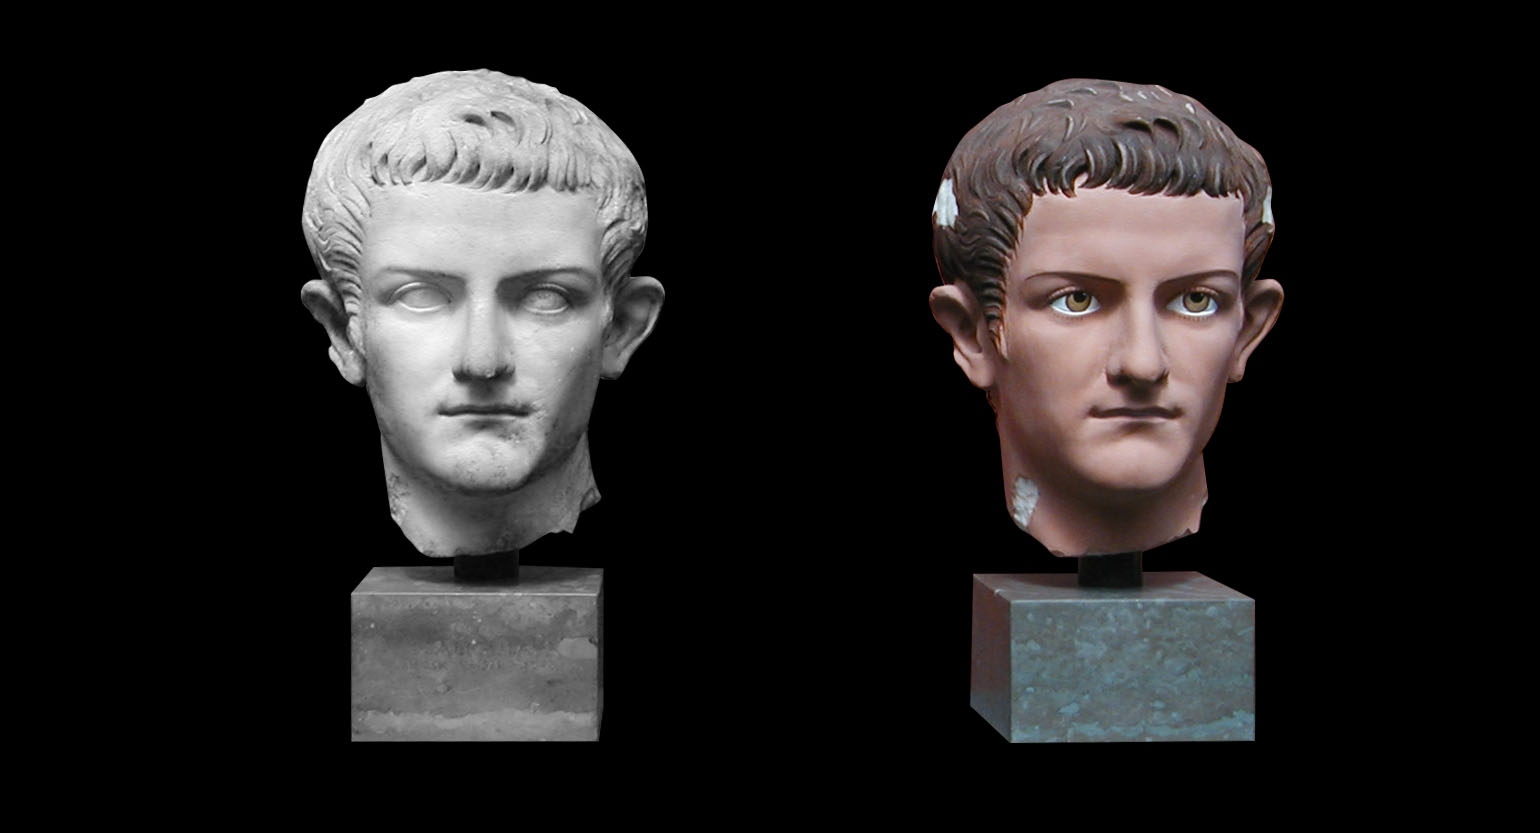 Black and White bust of Caligula Next to a Colourful bust of Caligula